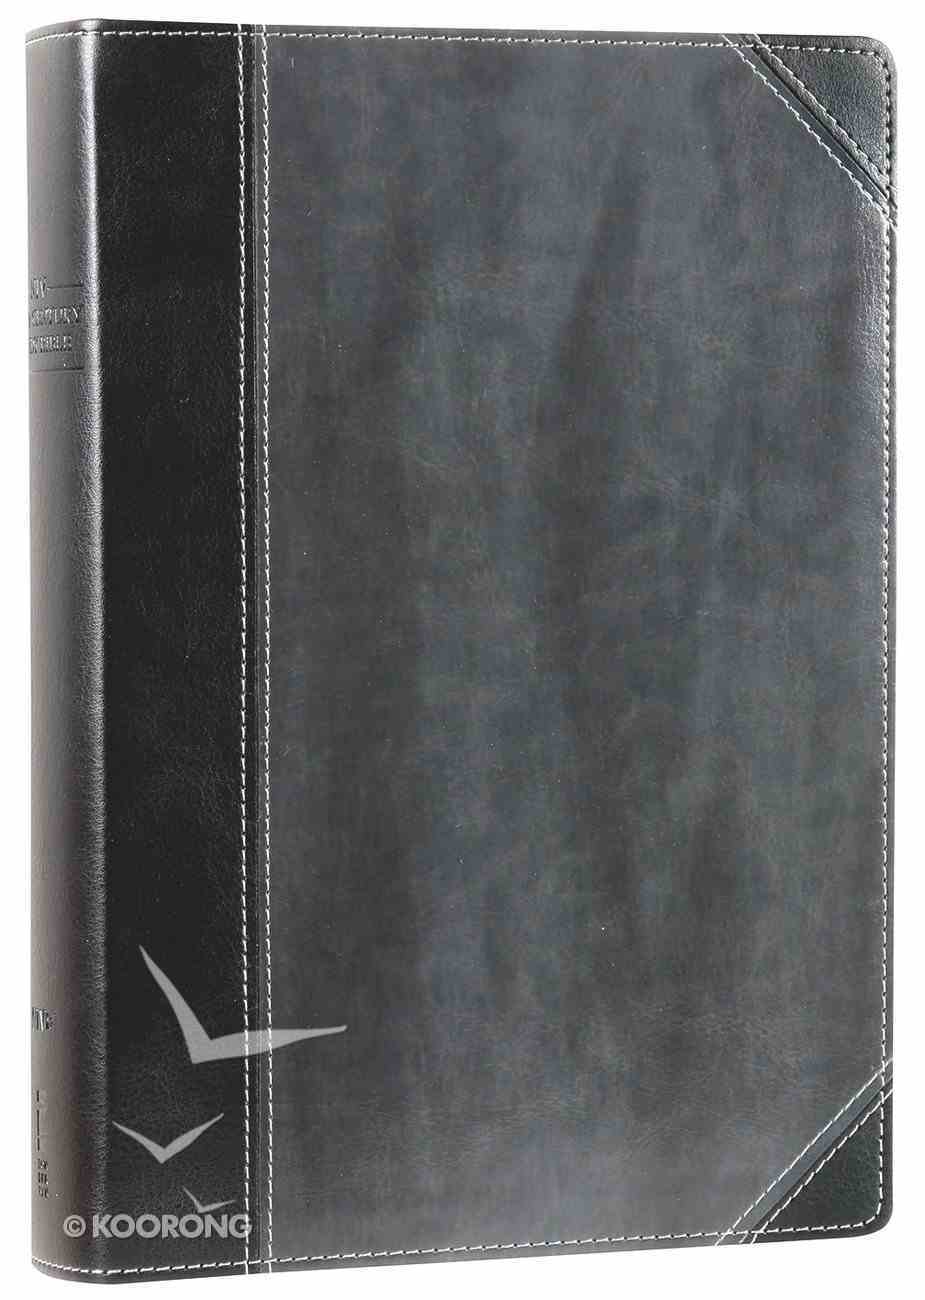 NIV First-Century Study Bible Black/Dark Charcoal (Black Letter Edition) Premium Imitation Leather